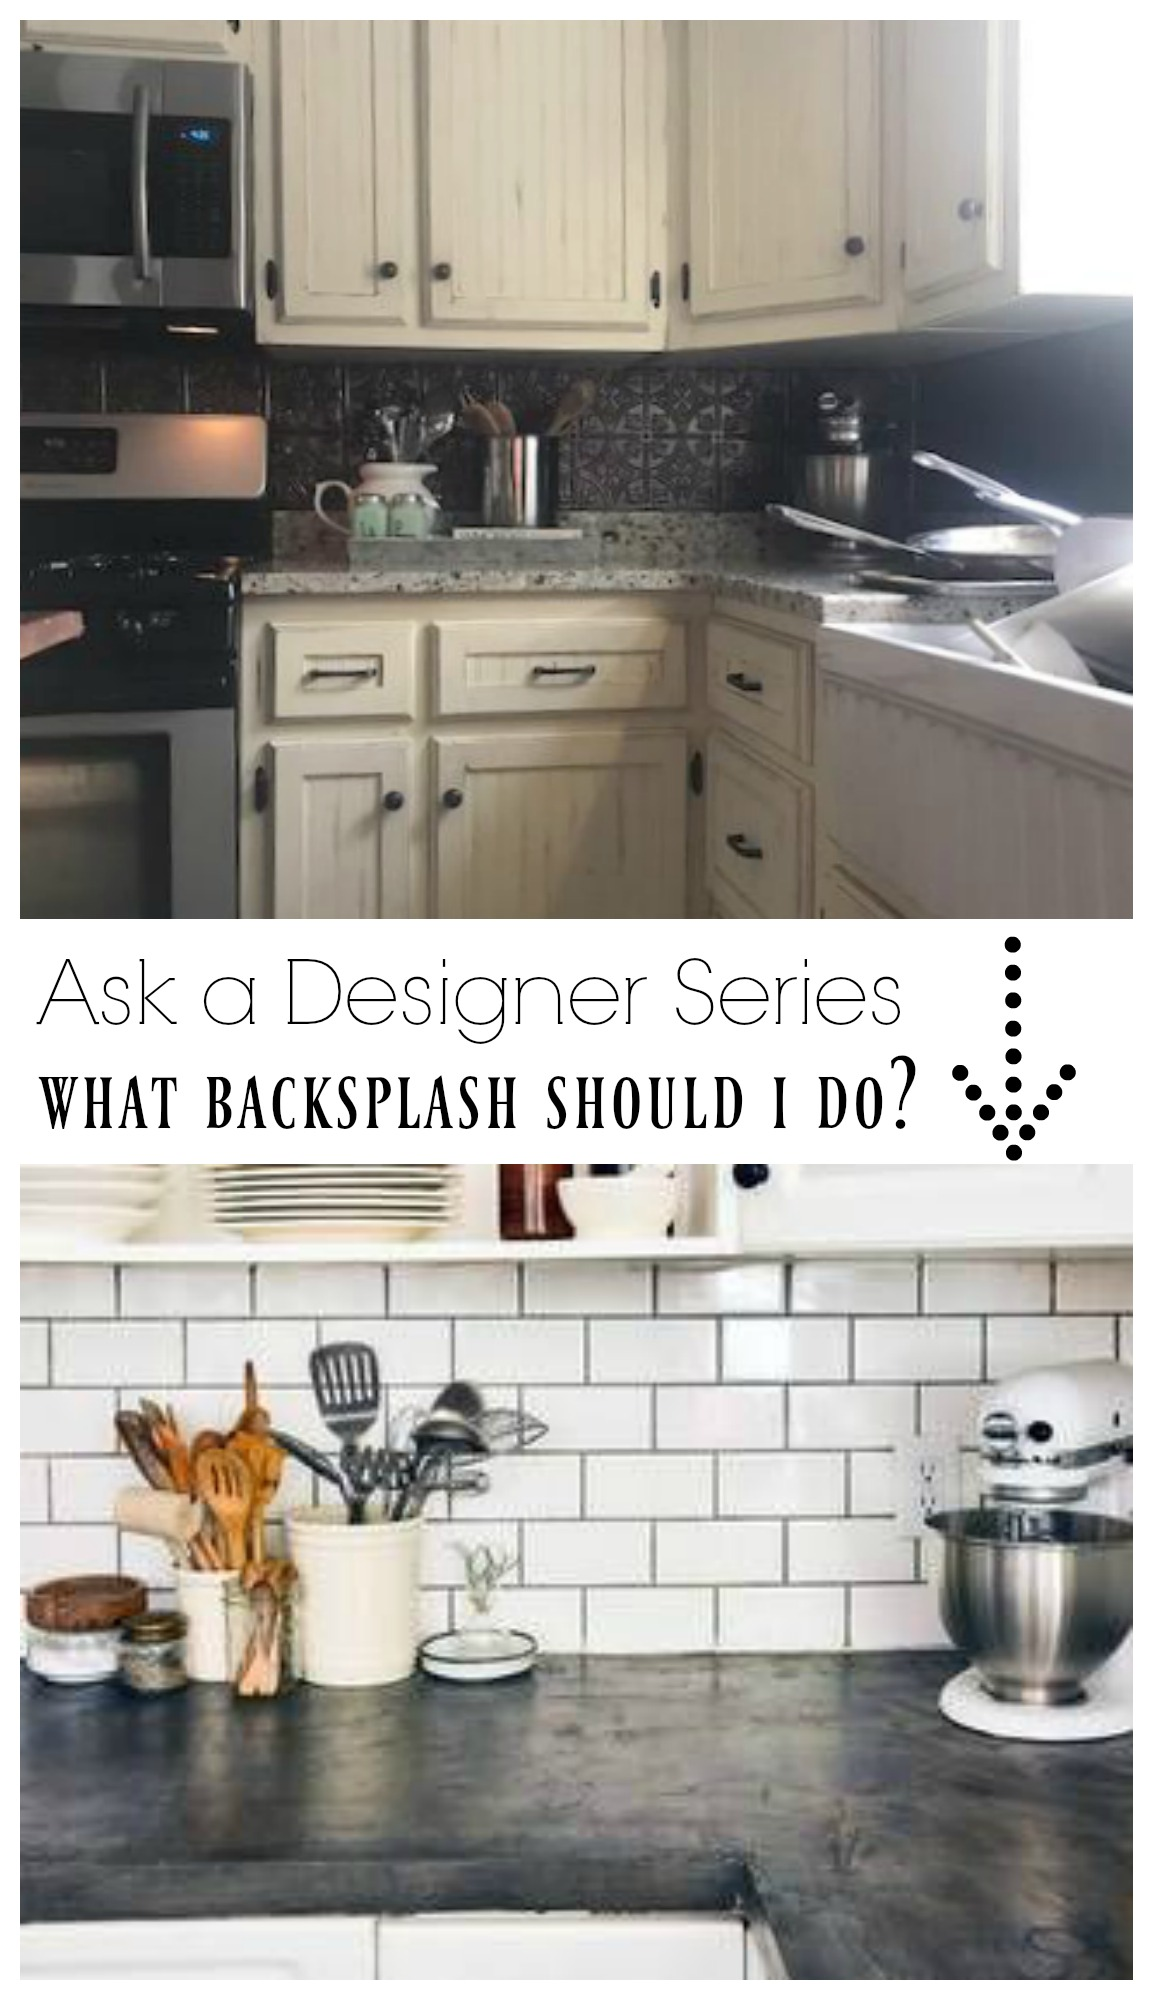 Ask a Designer Series- What backsplash should I do?